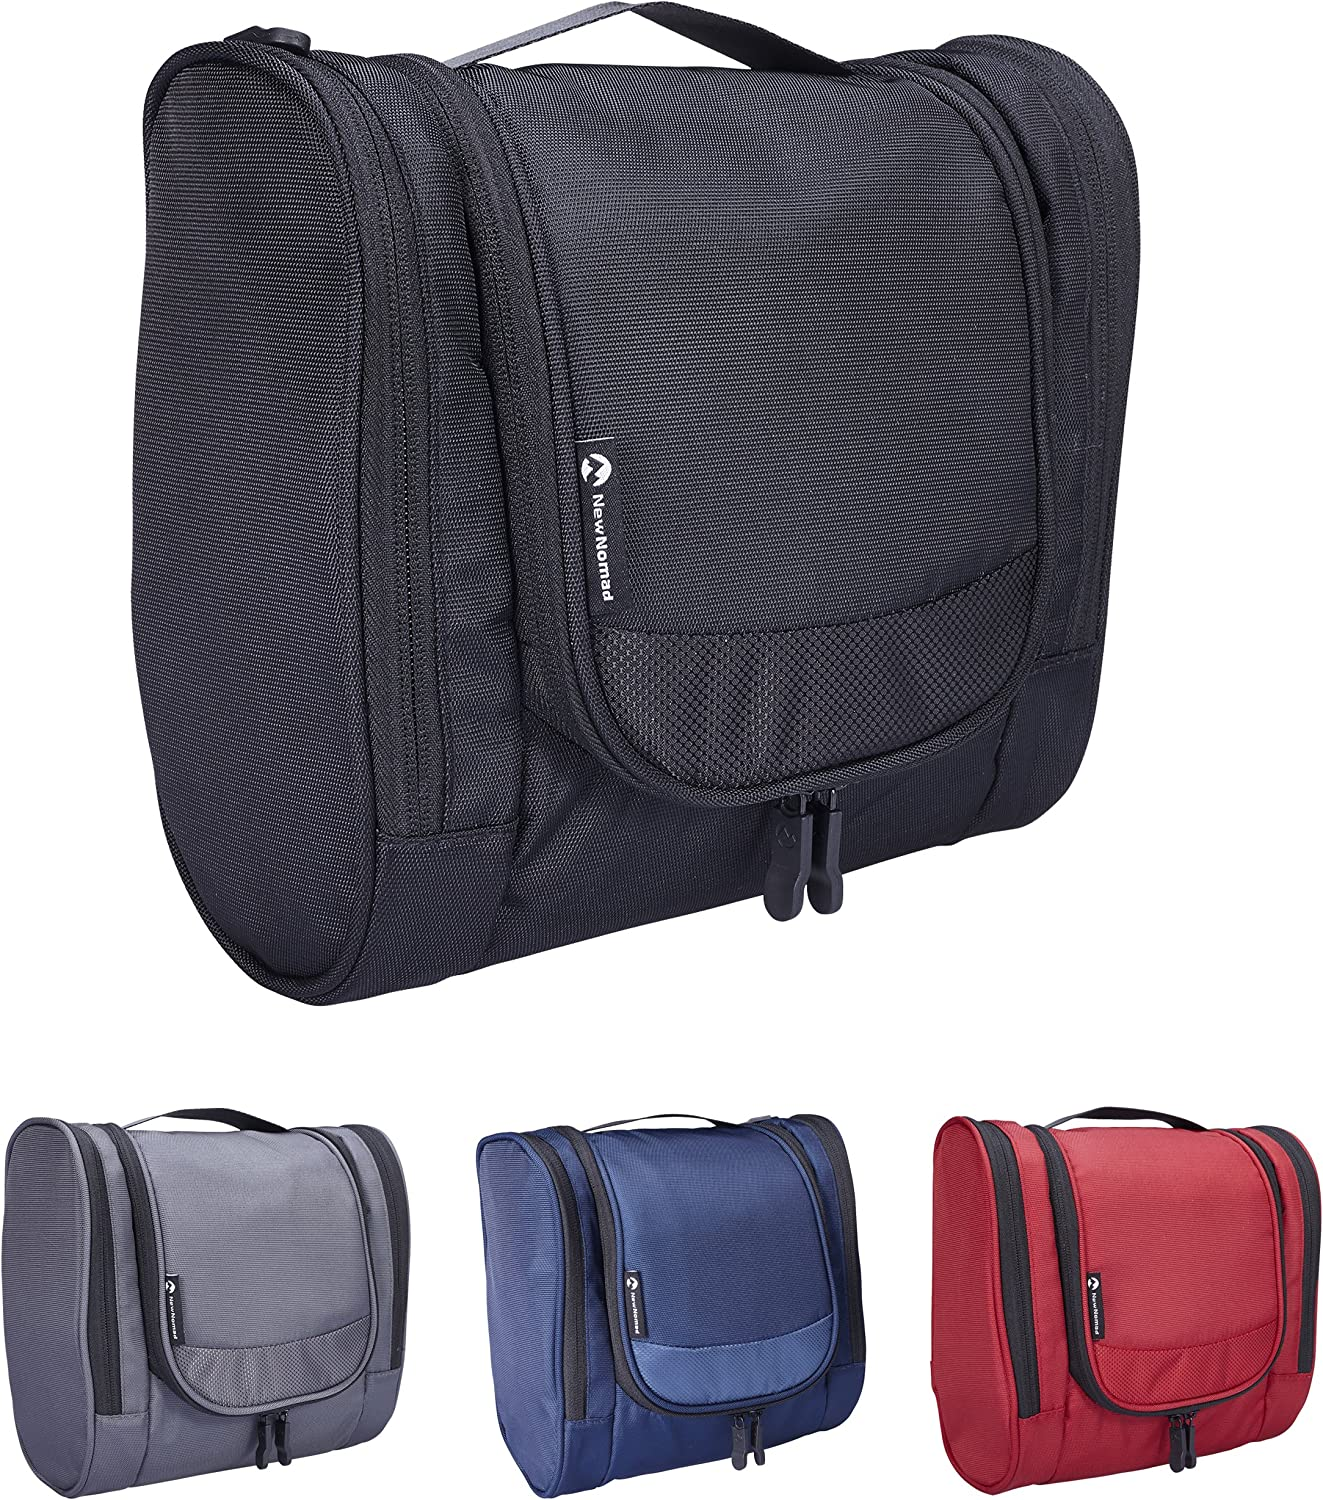 NewNomad Hanging Toiletry Bag for Men and Women, Water Resistant Toiletry Kit